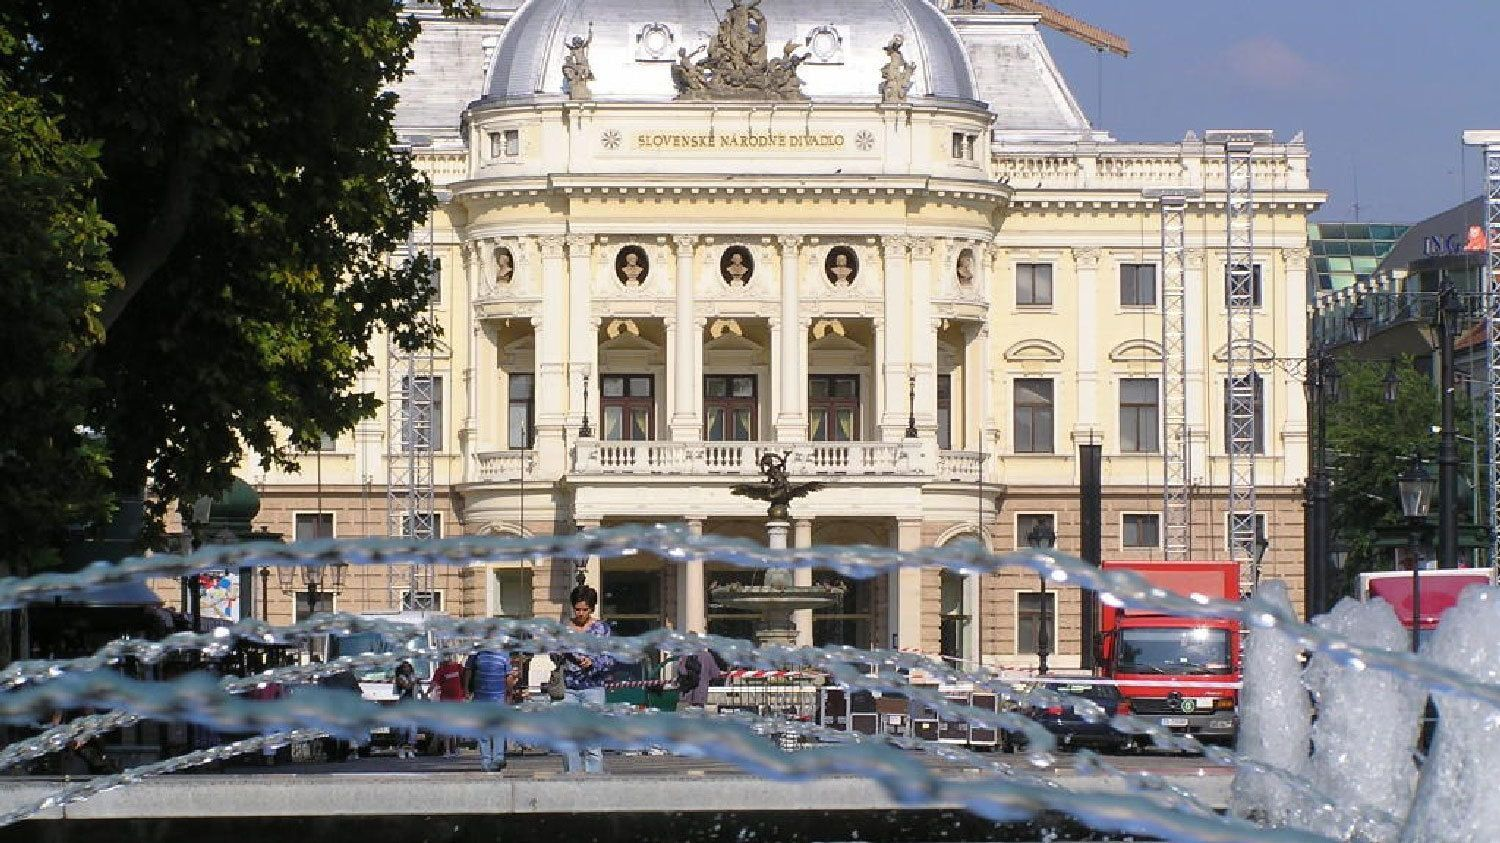 View of the Slovak National Theatre in Bratislava